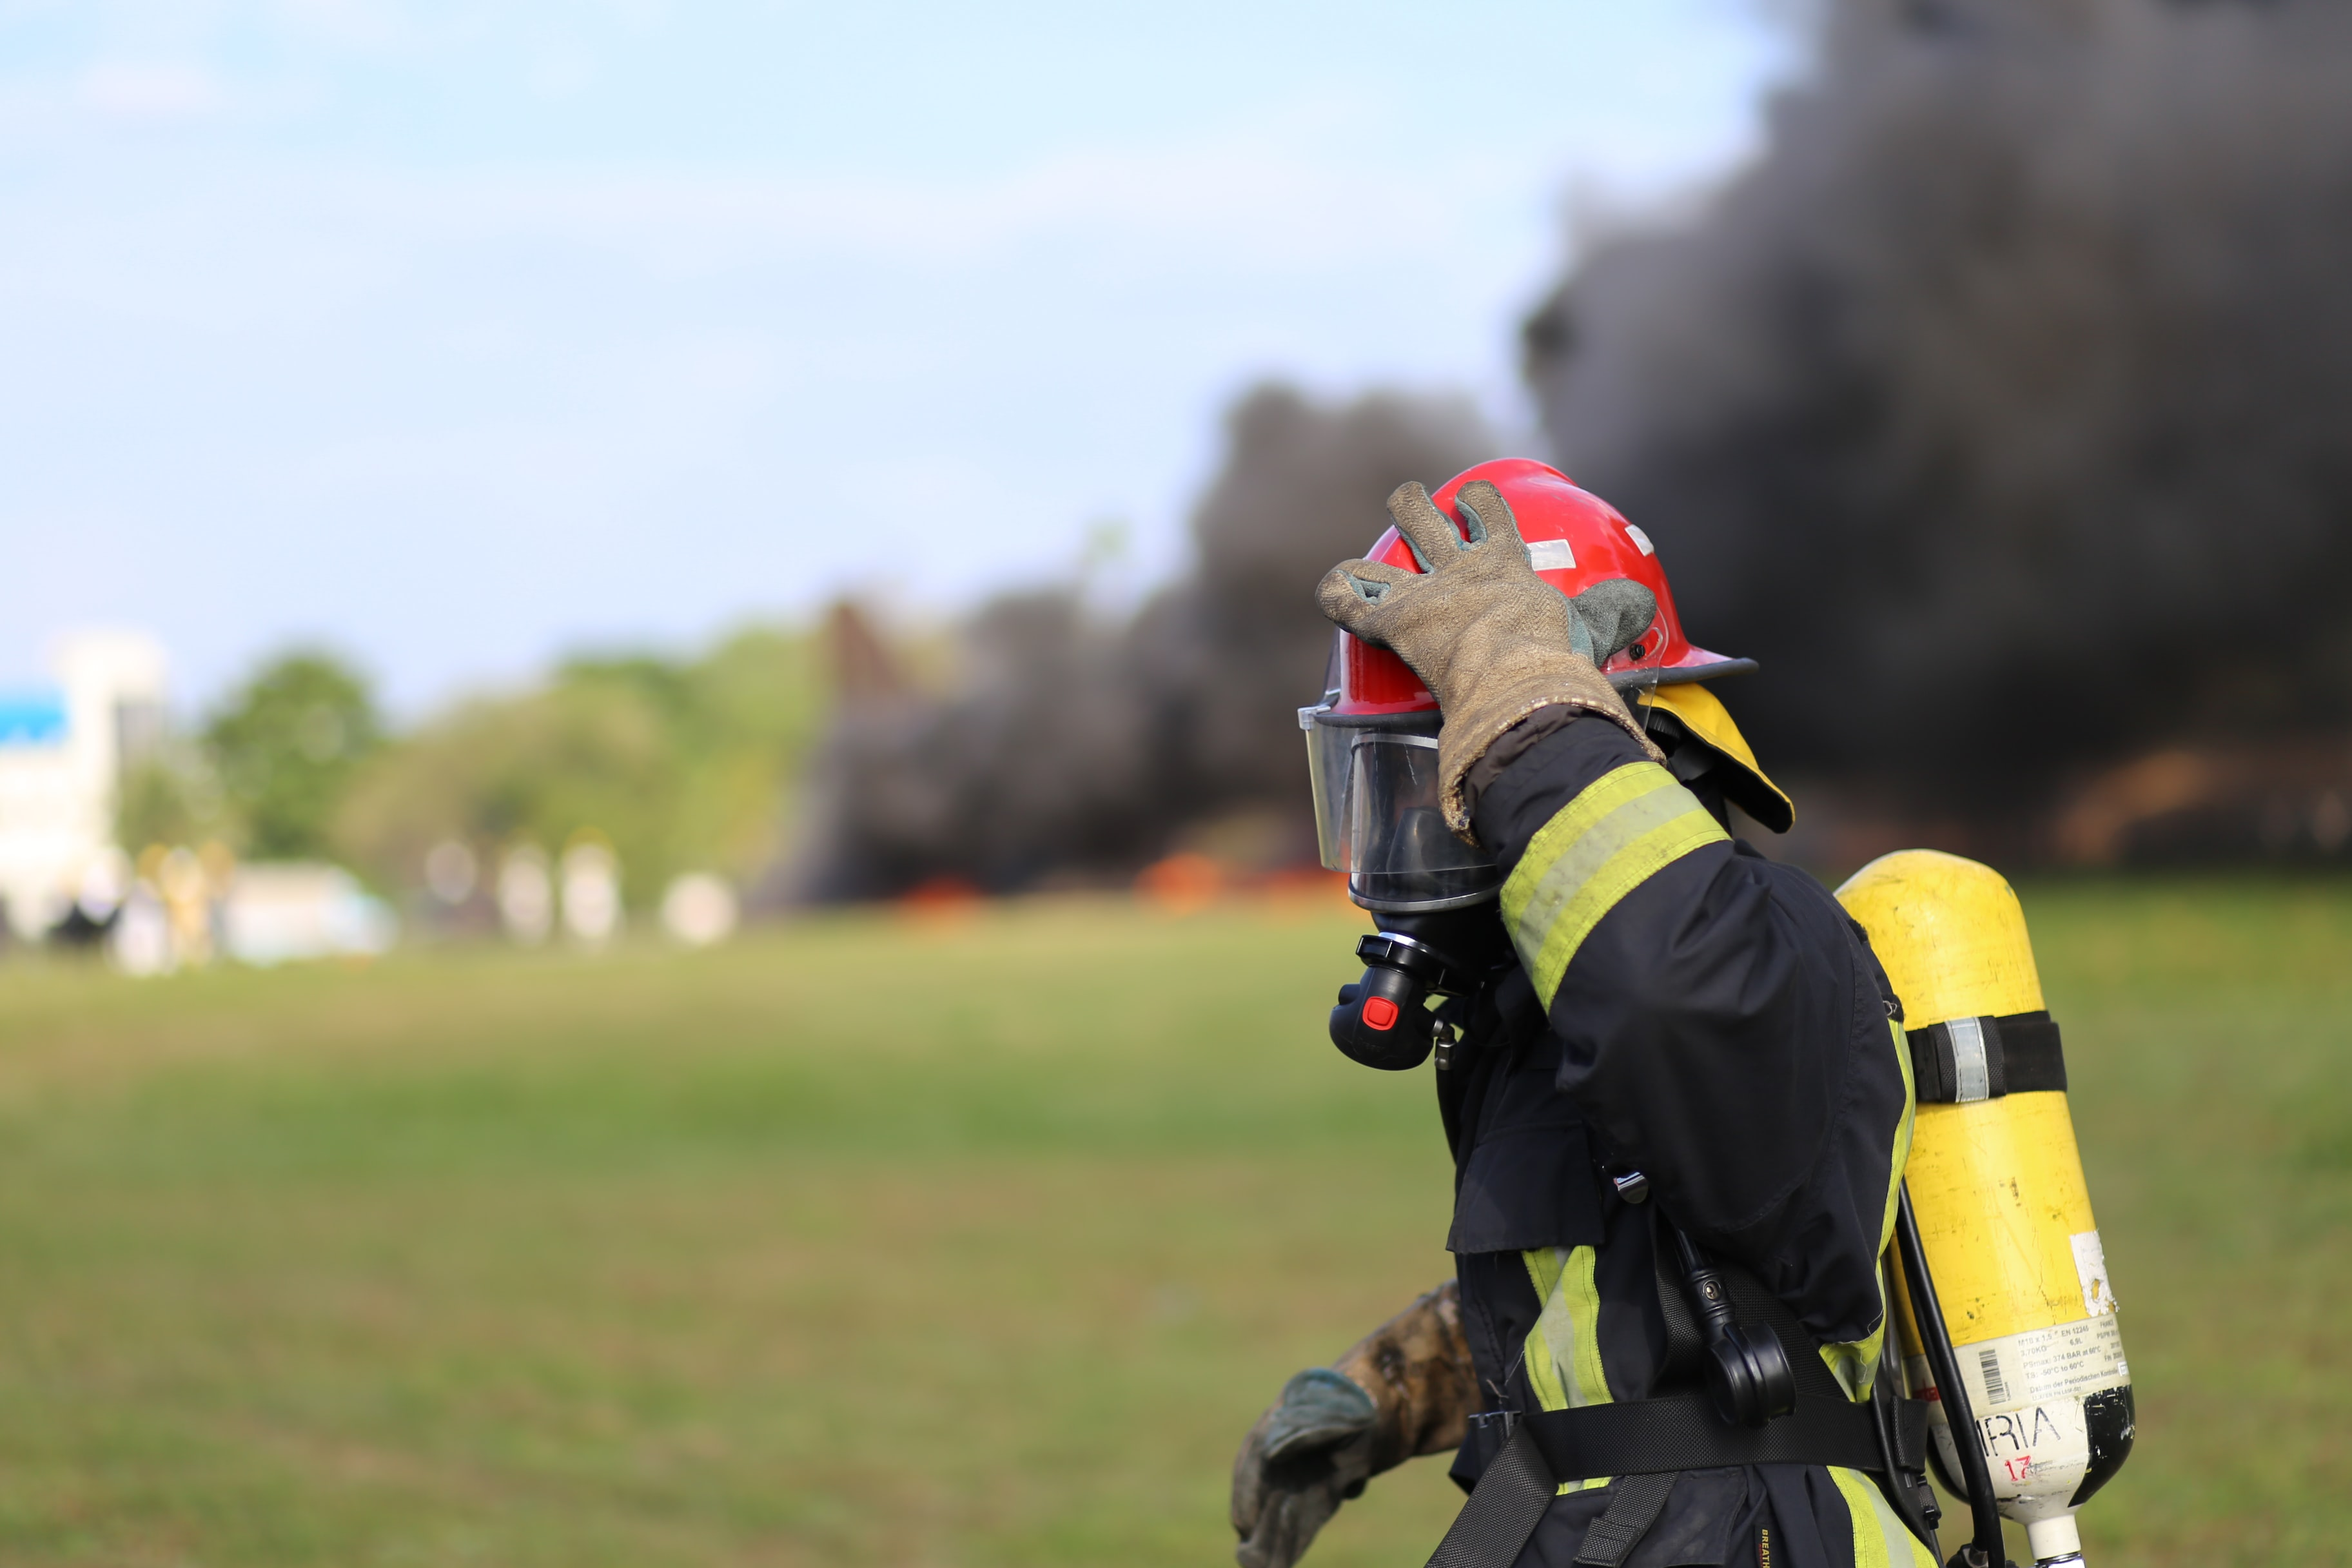 firefighter touching own helmet during day